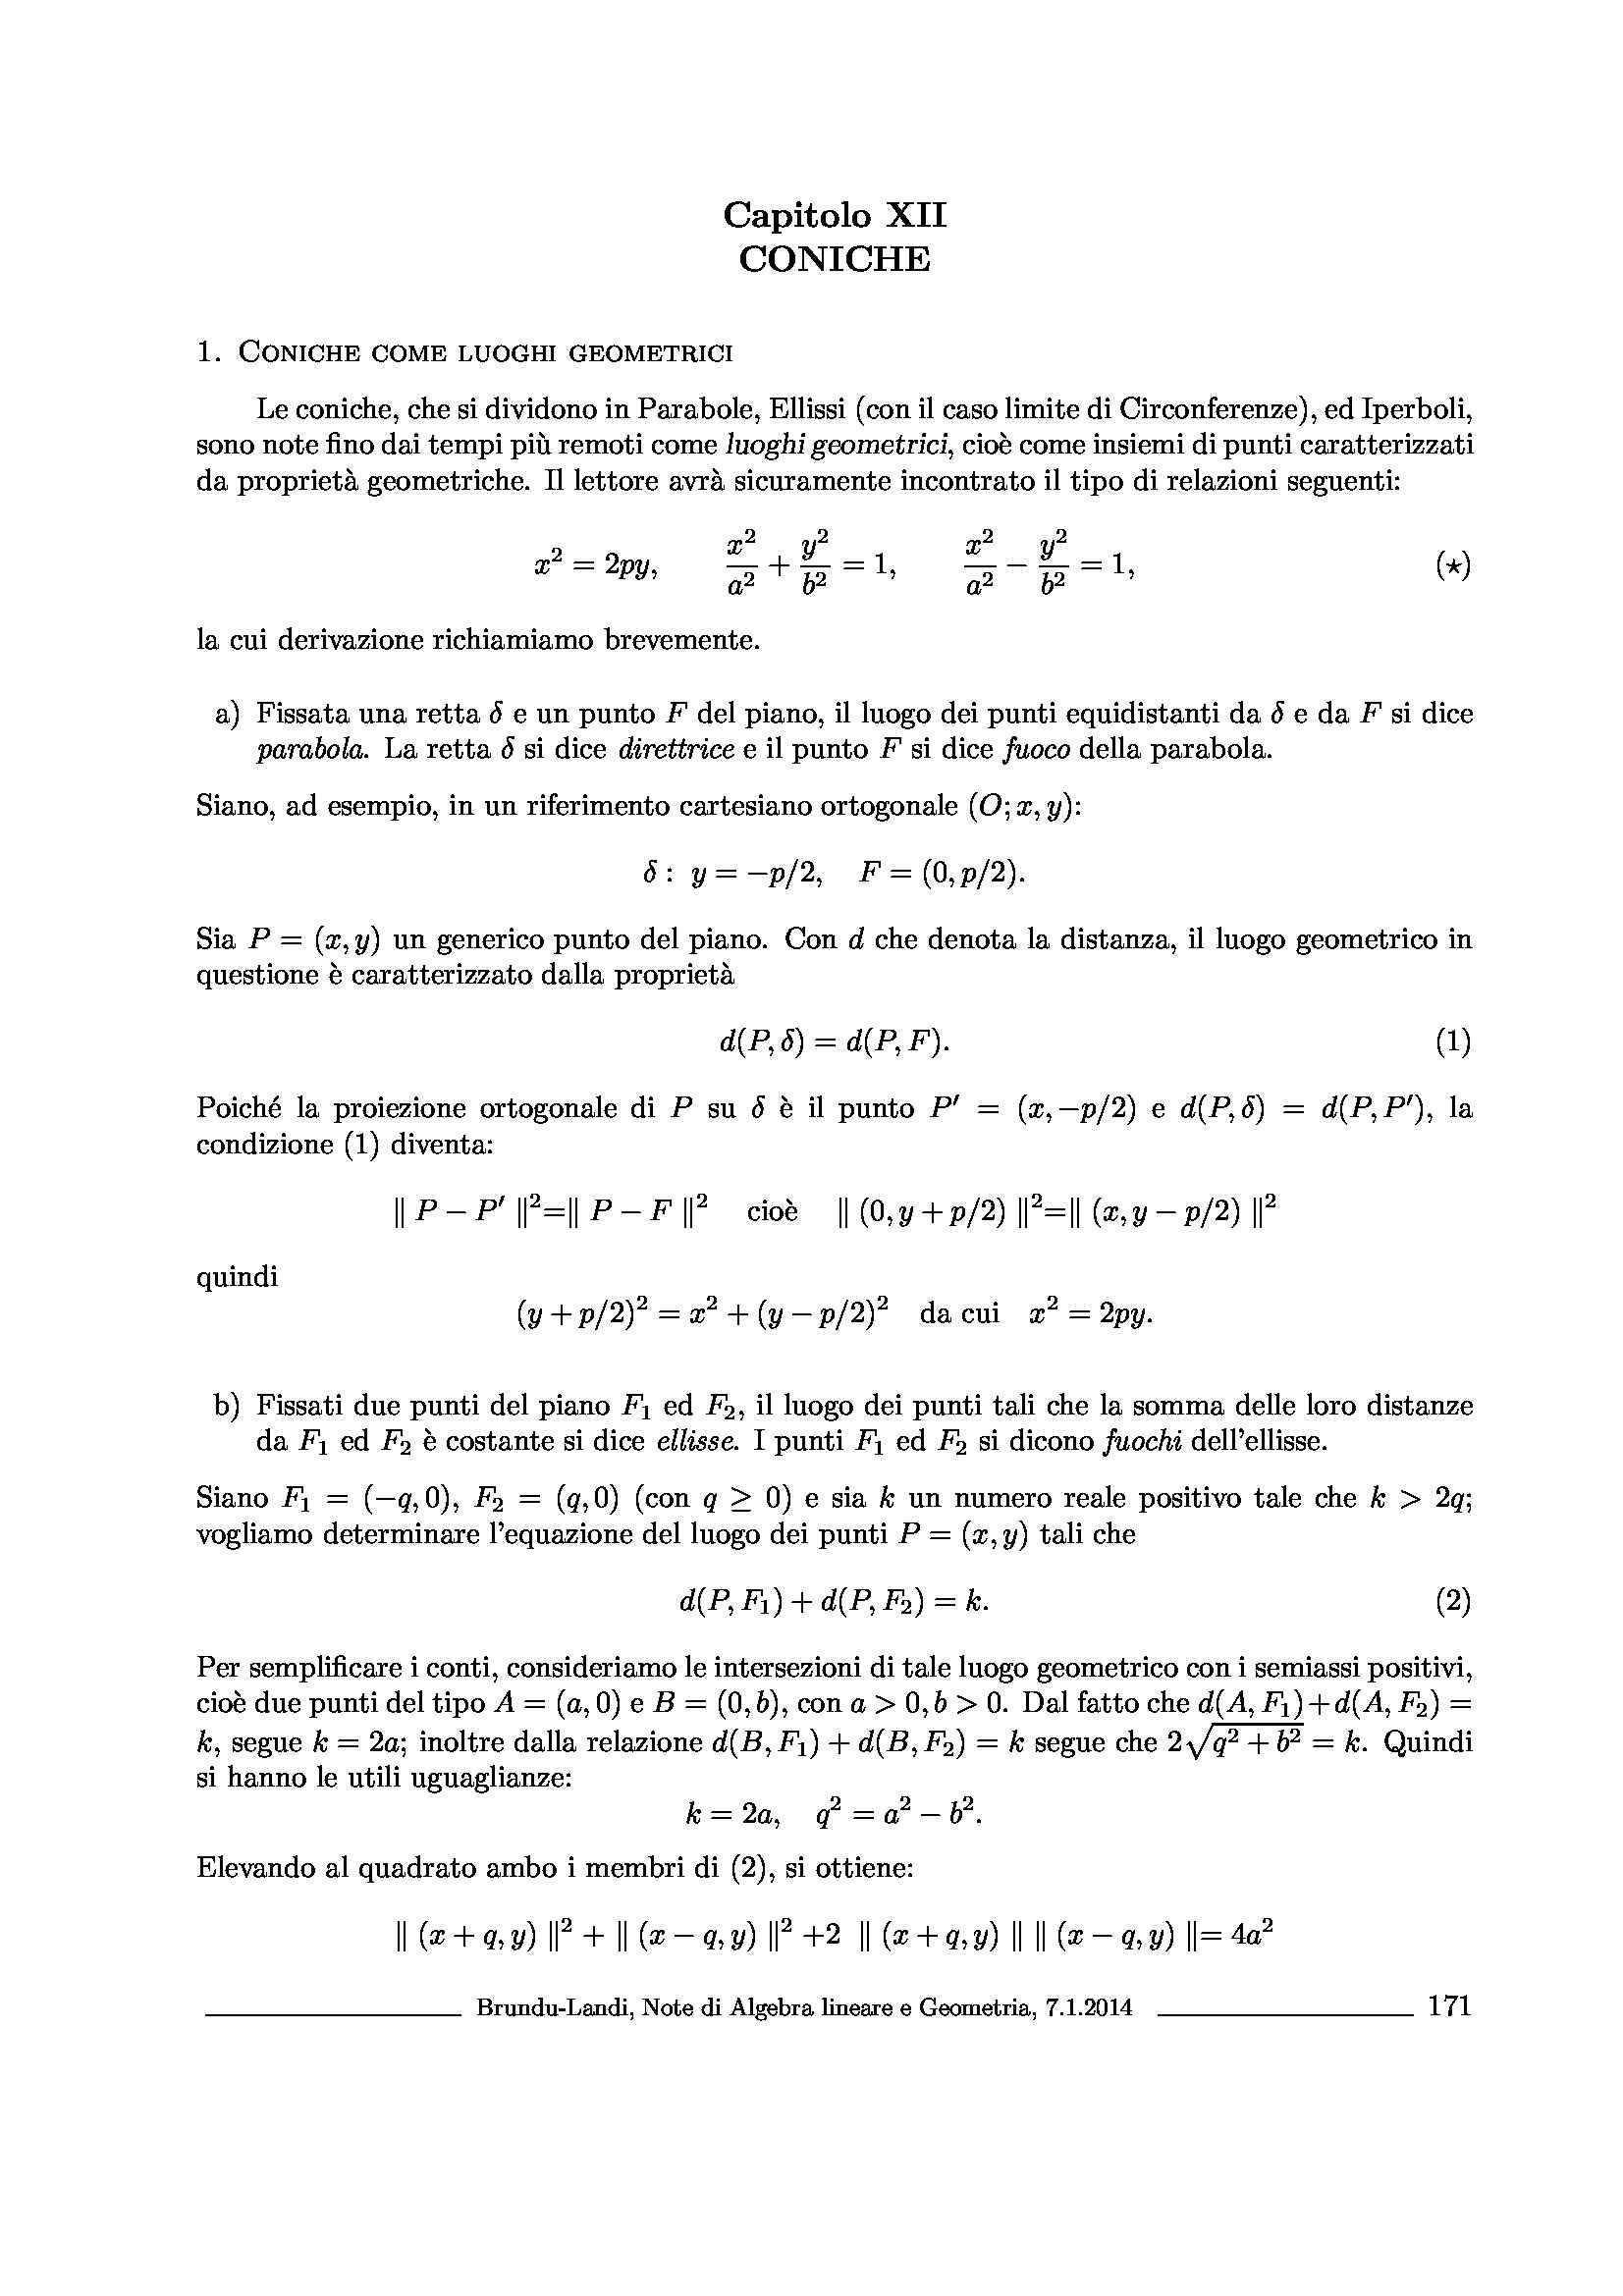 Dispensa di Matematica - Coniche